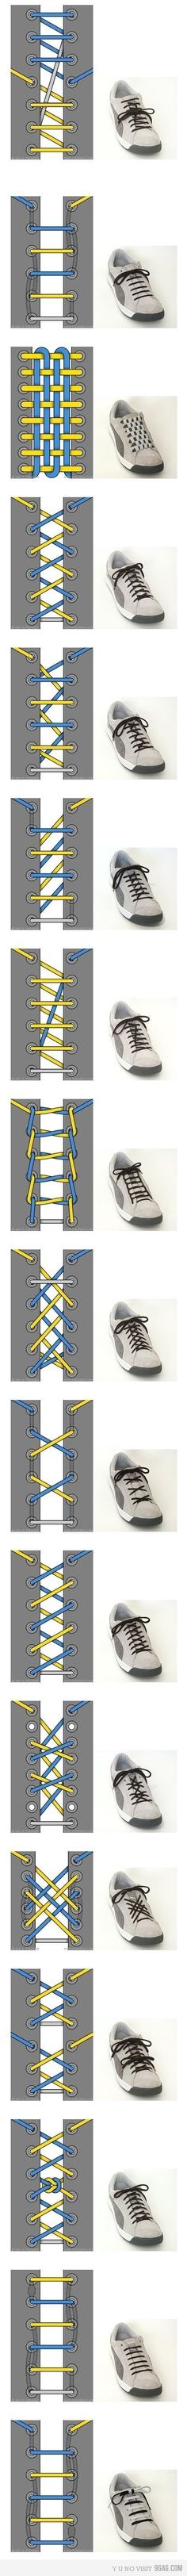 When I was a kid I knew people who strung their laces differently, but I never knew how. Wish I had this as a kid.